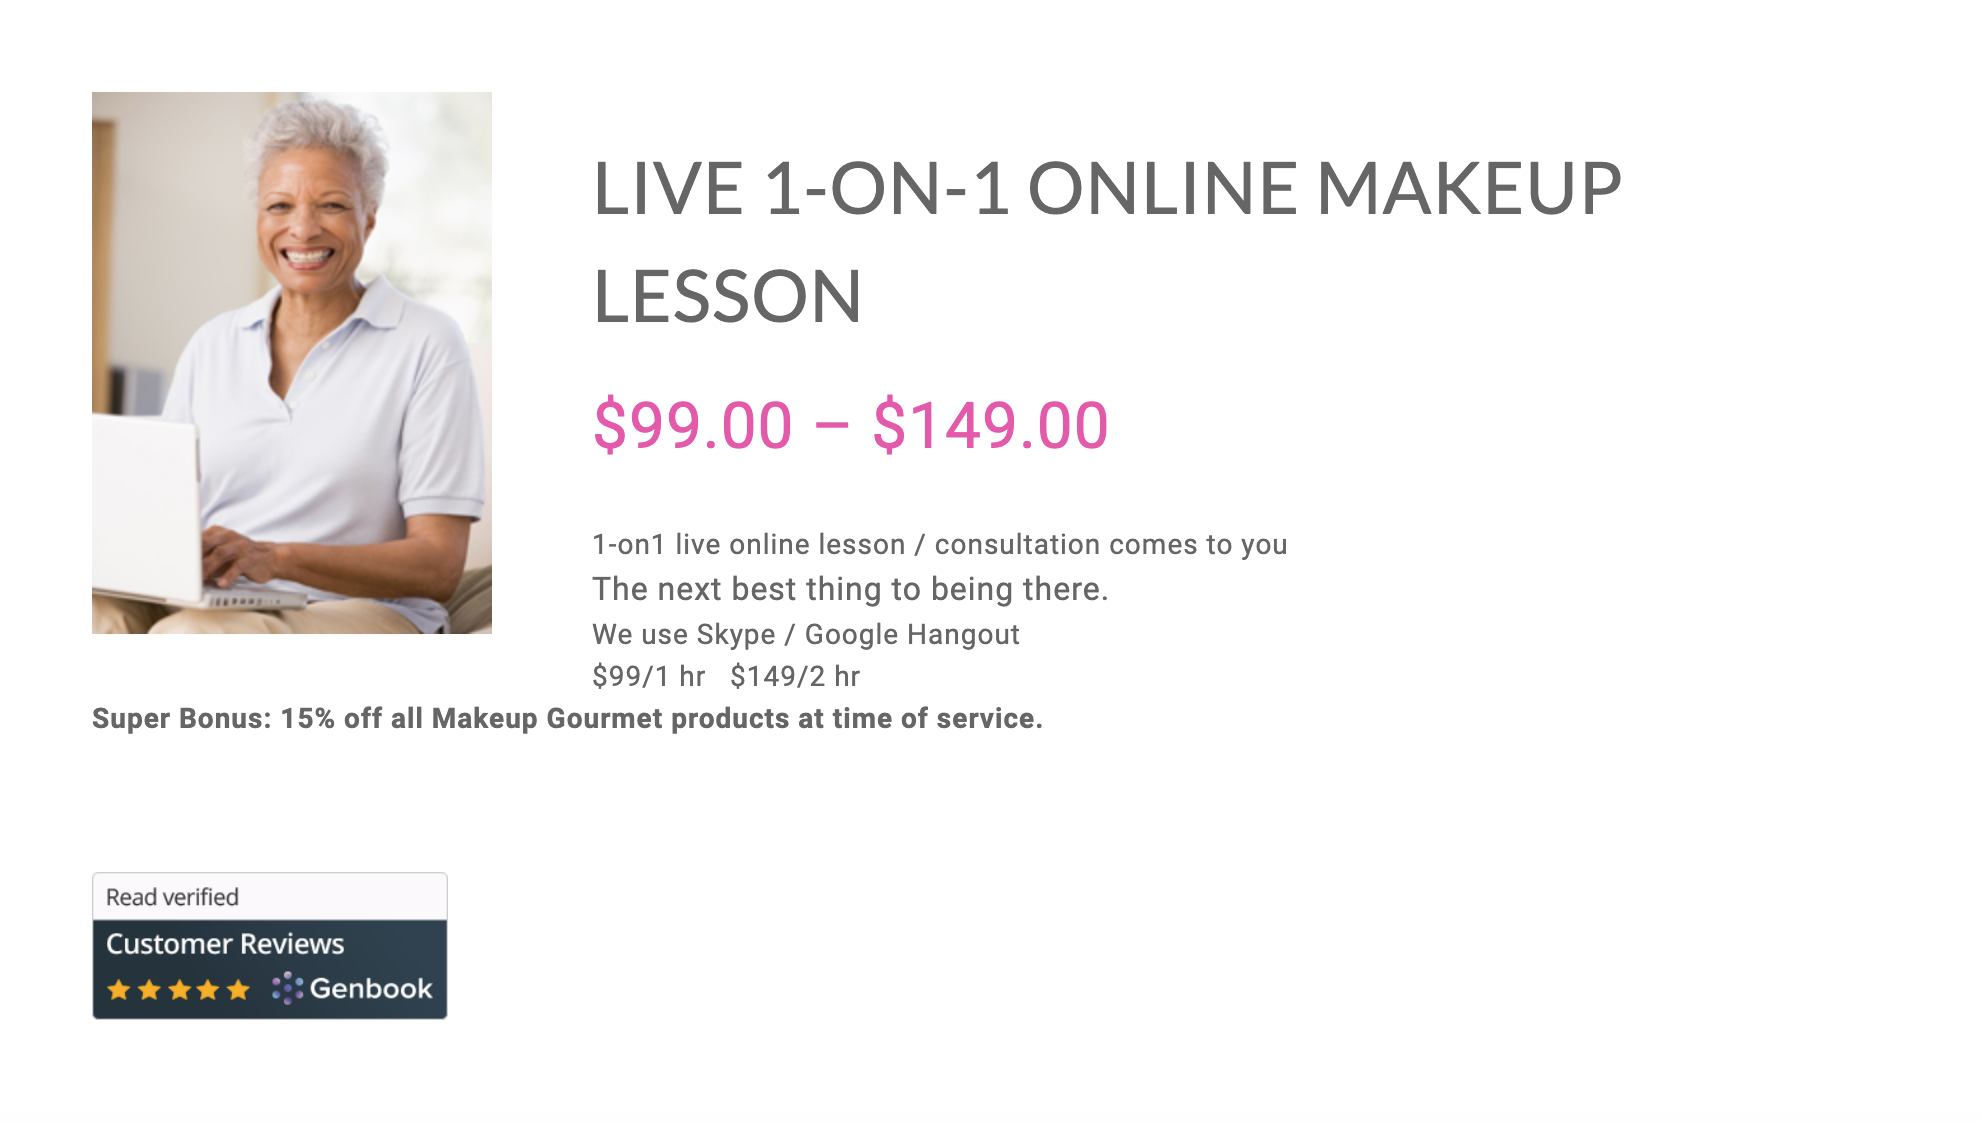 Live 1:1 make up session